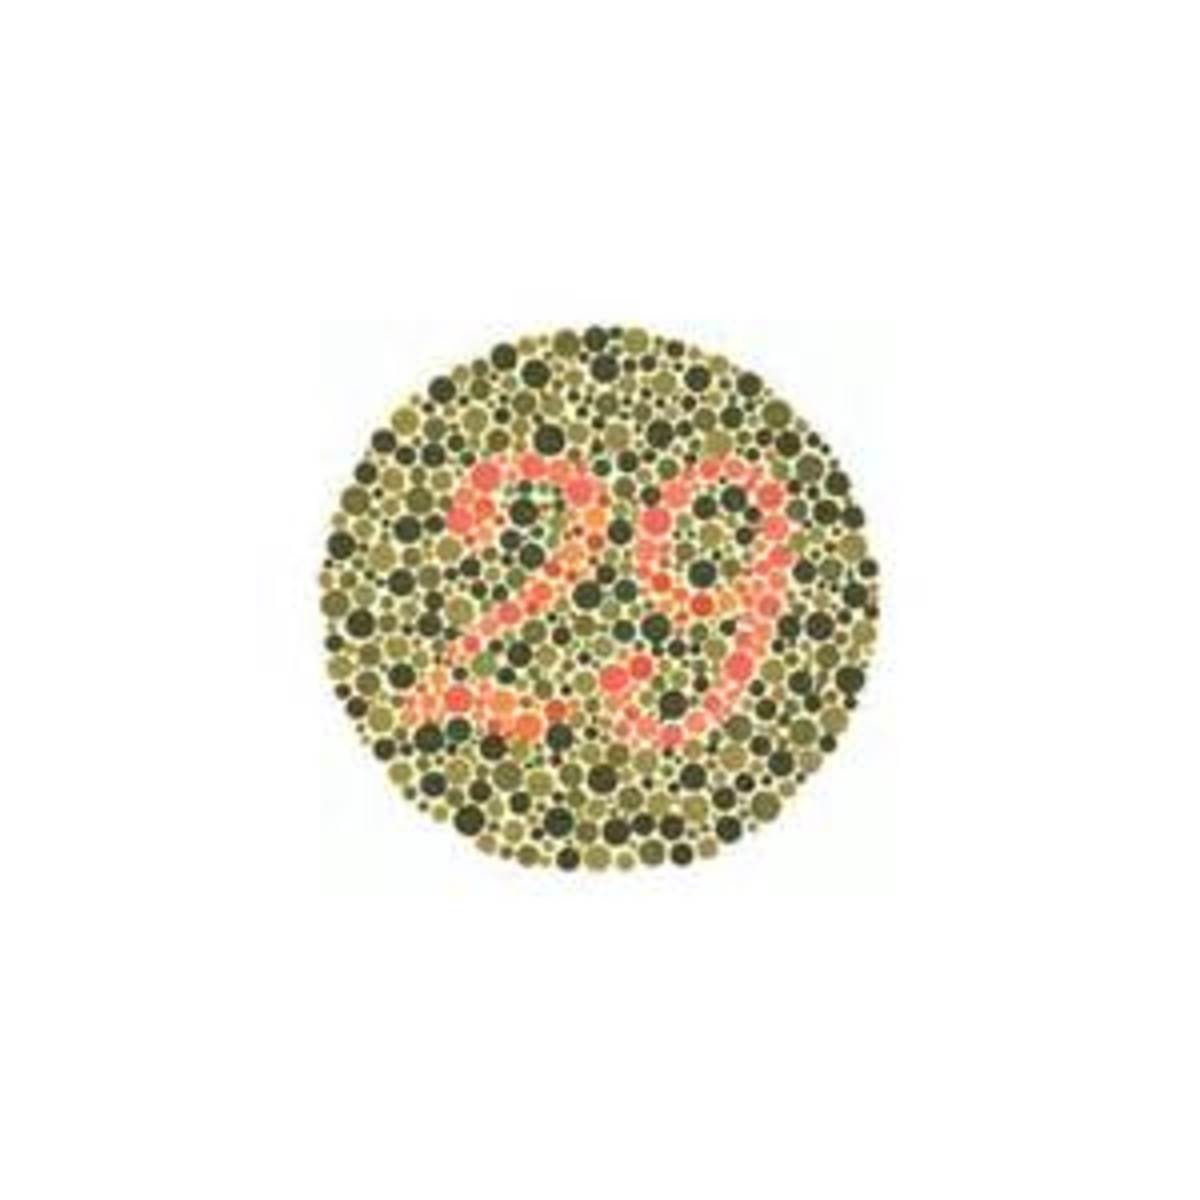 People with normal colour vision can see the number 29 inside the circle.